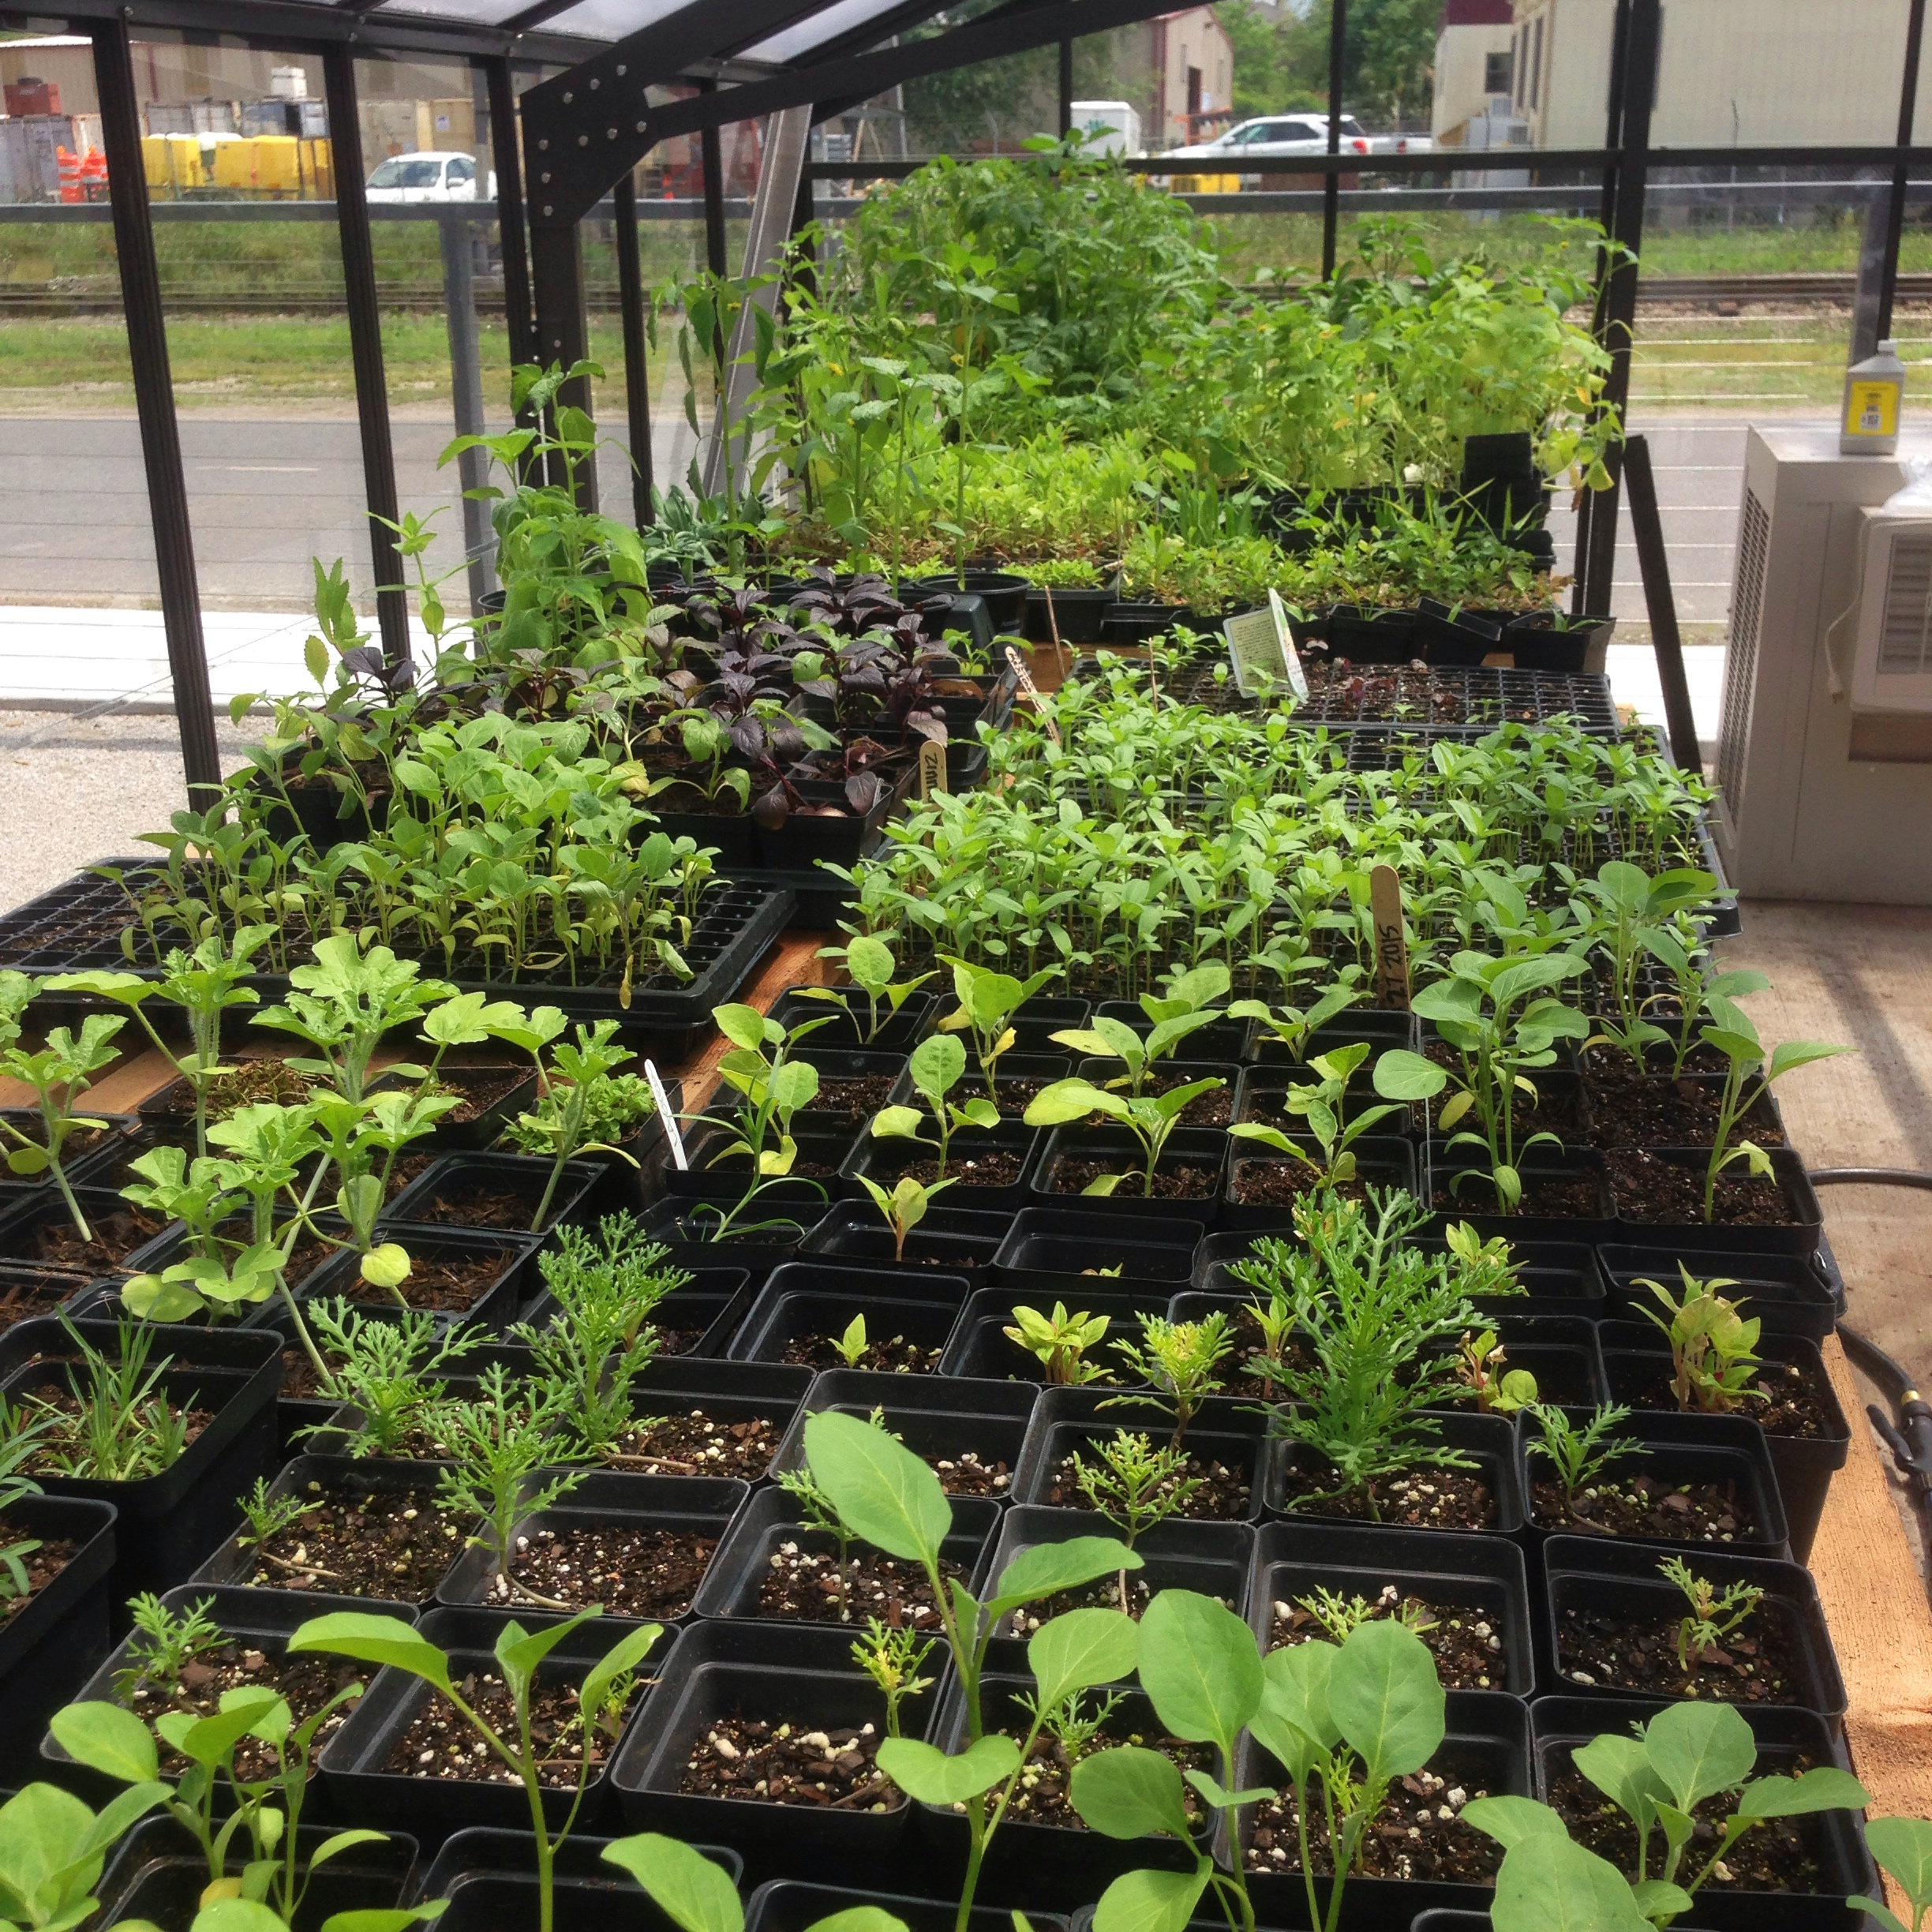 Press Street Gardens' Plant Share: sign up by February 14